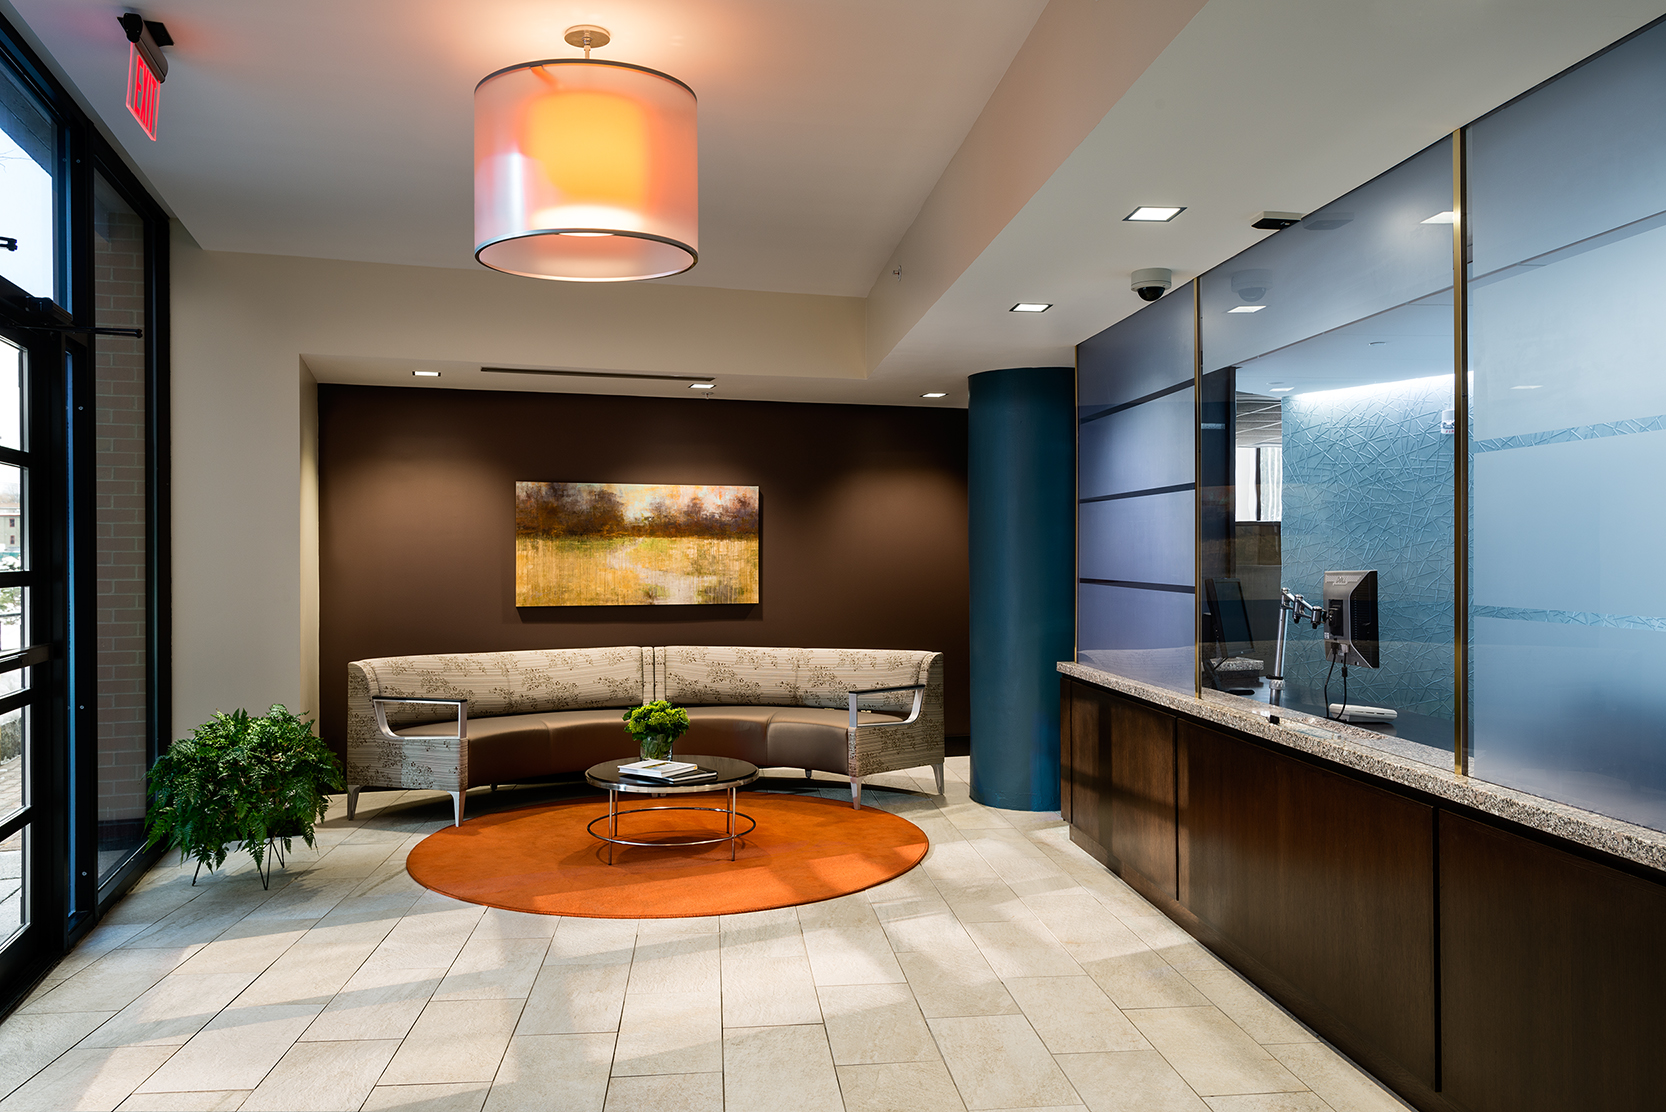 New, high-contrast finishes, lighting, and furnishings update this narrow lobby.